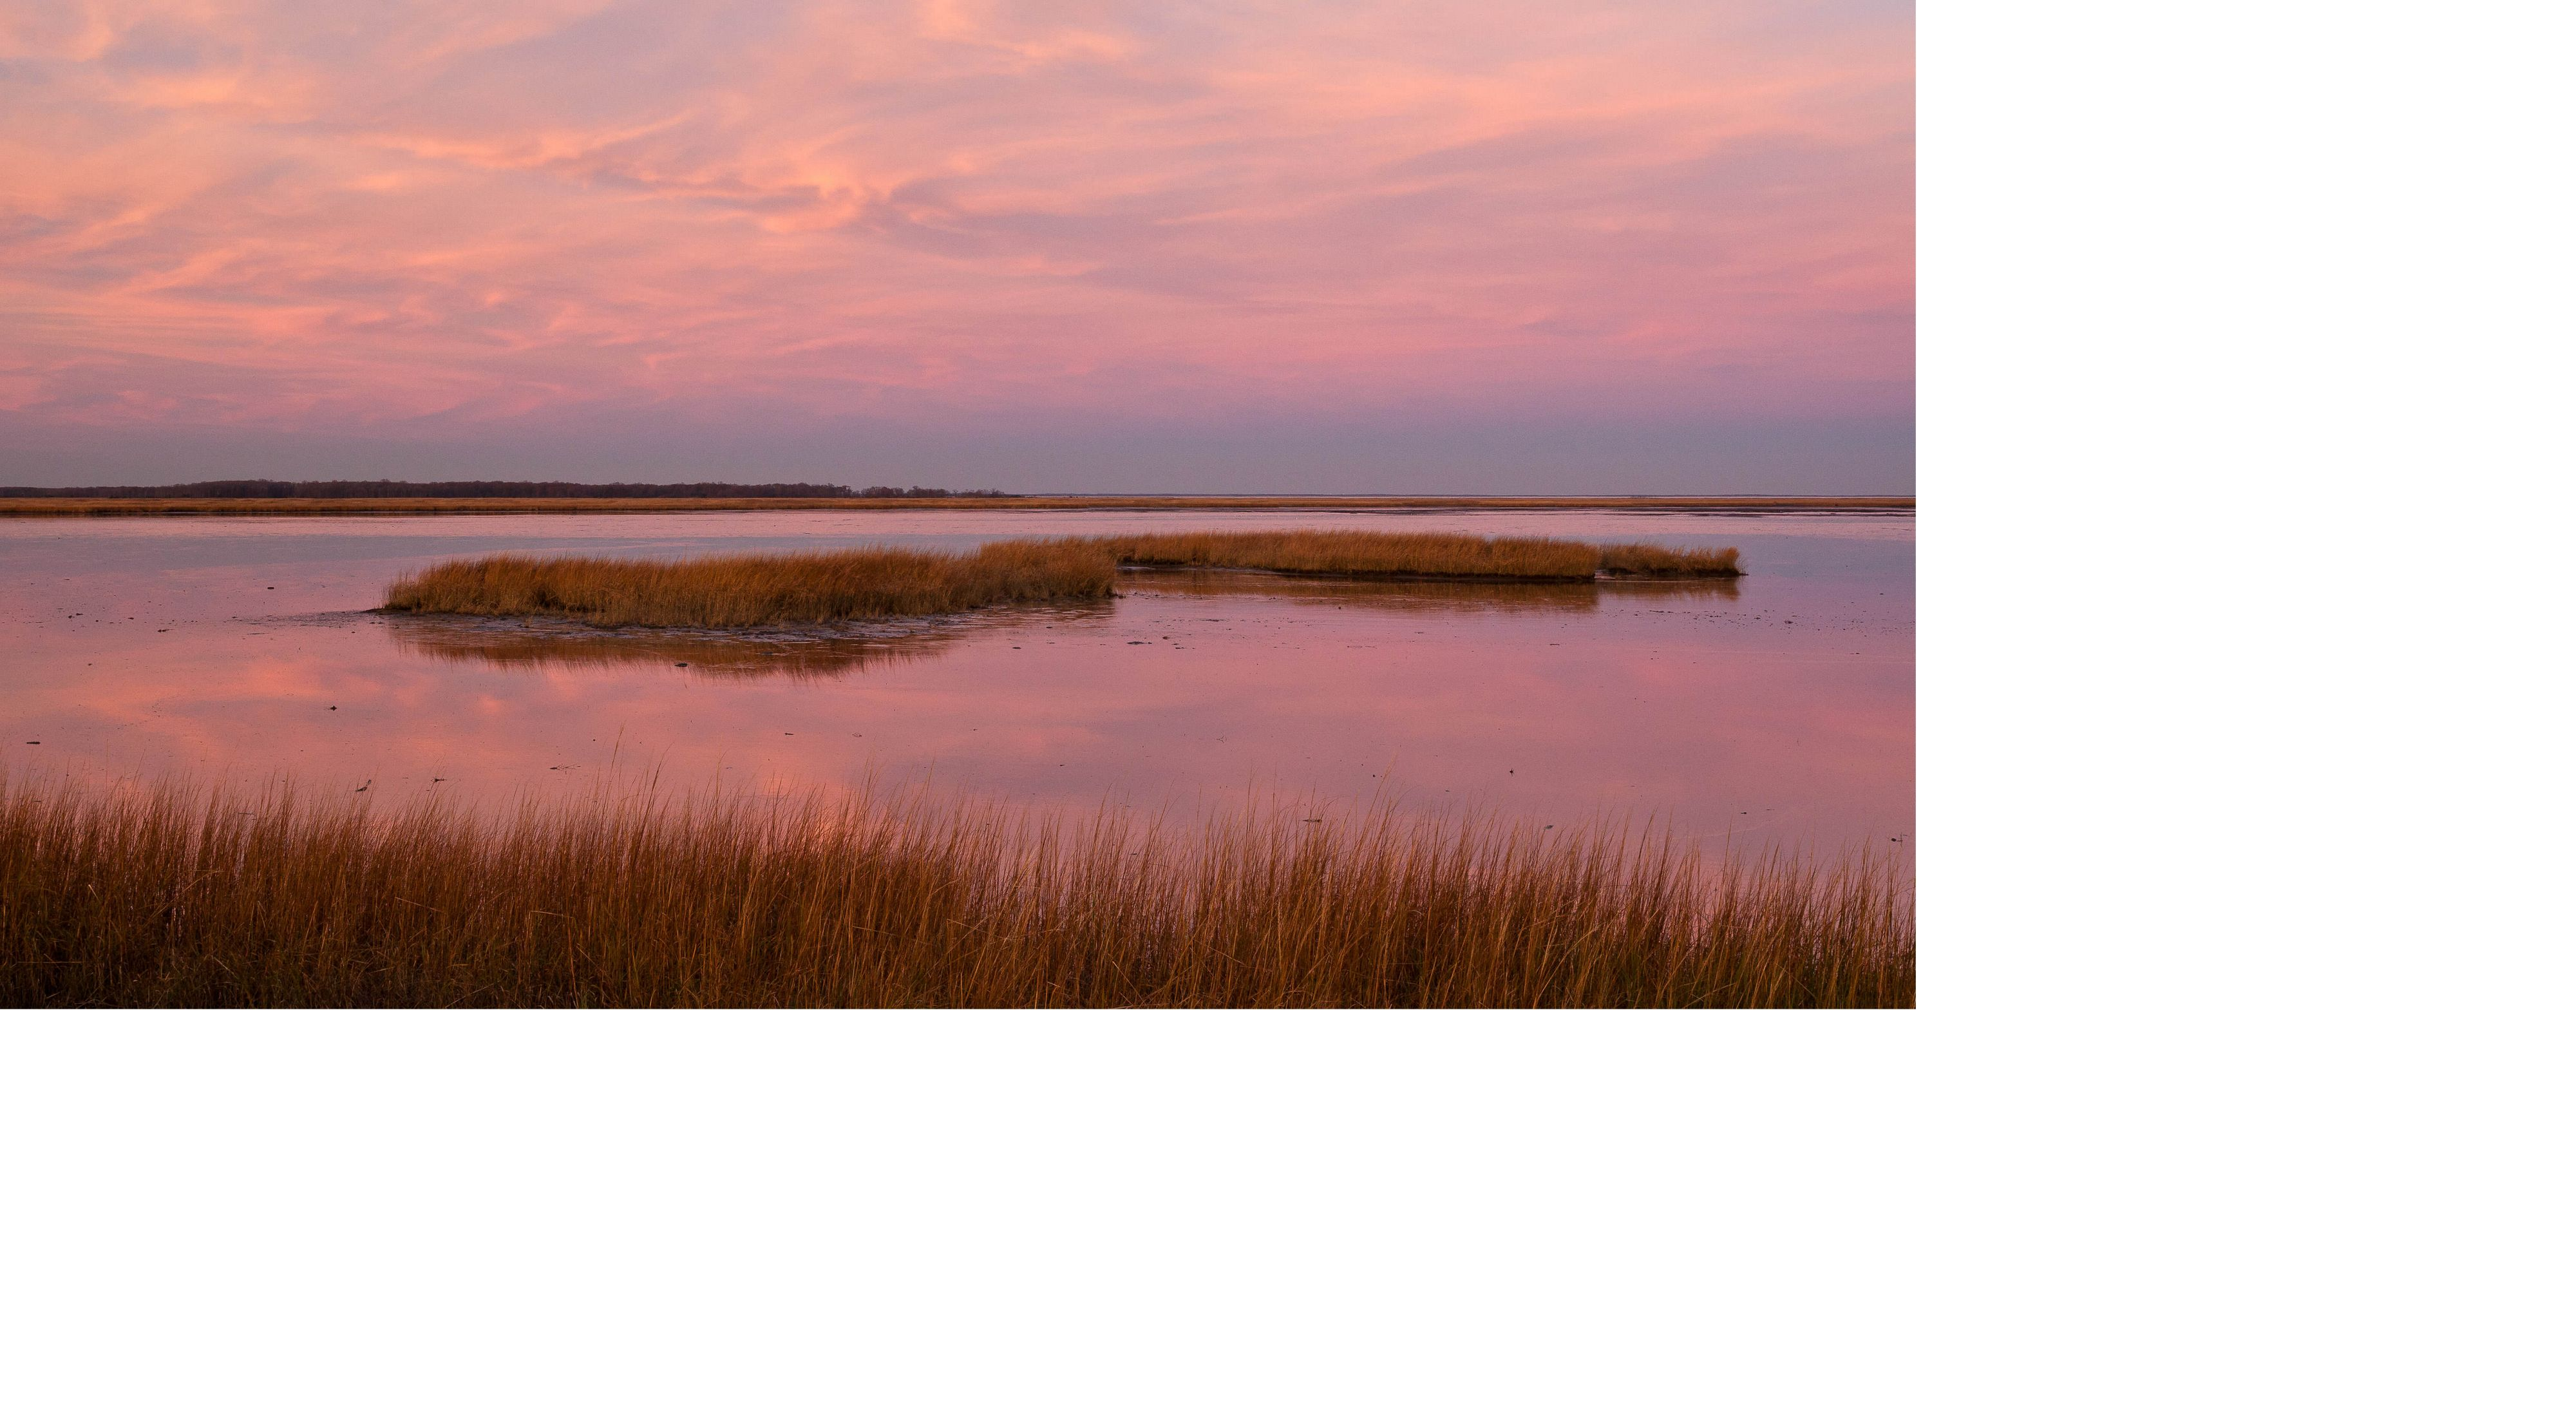 Sun rise casts pink light over a coastal MD wetland.